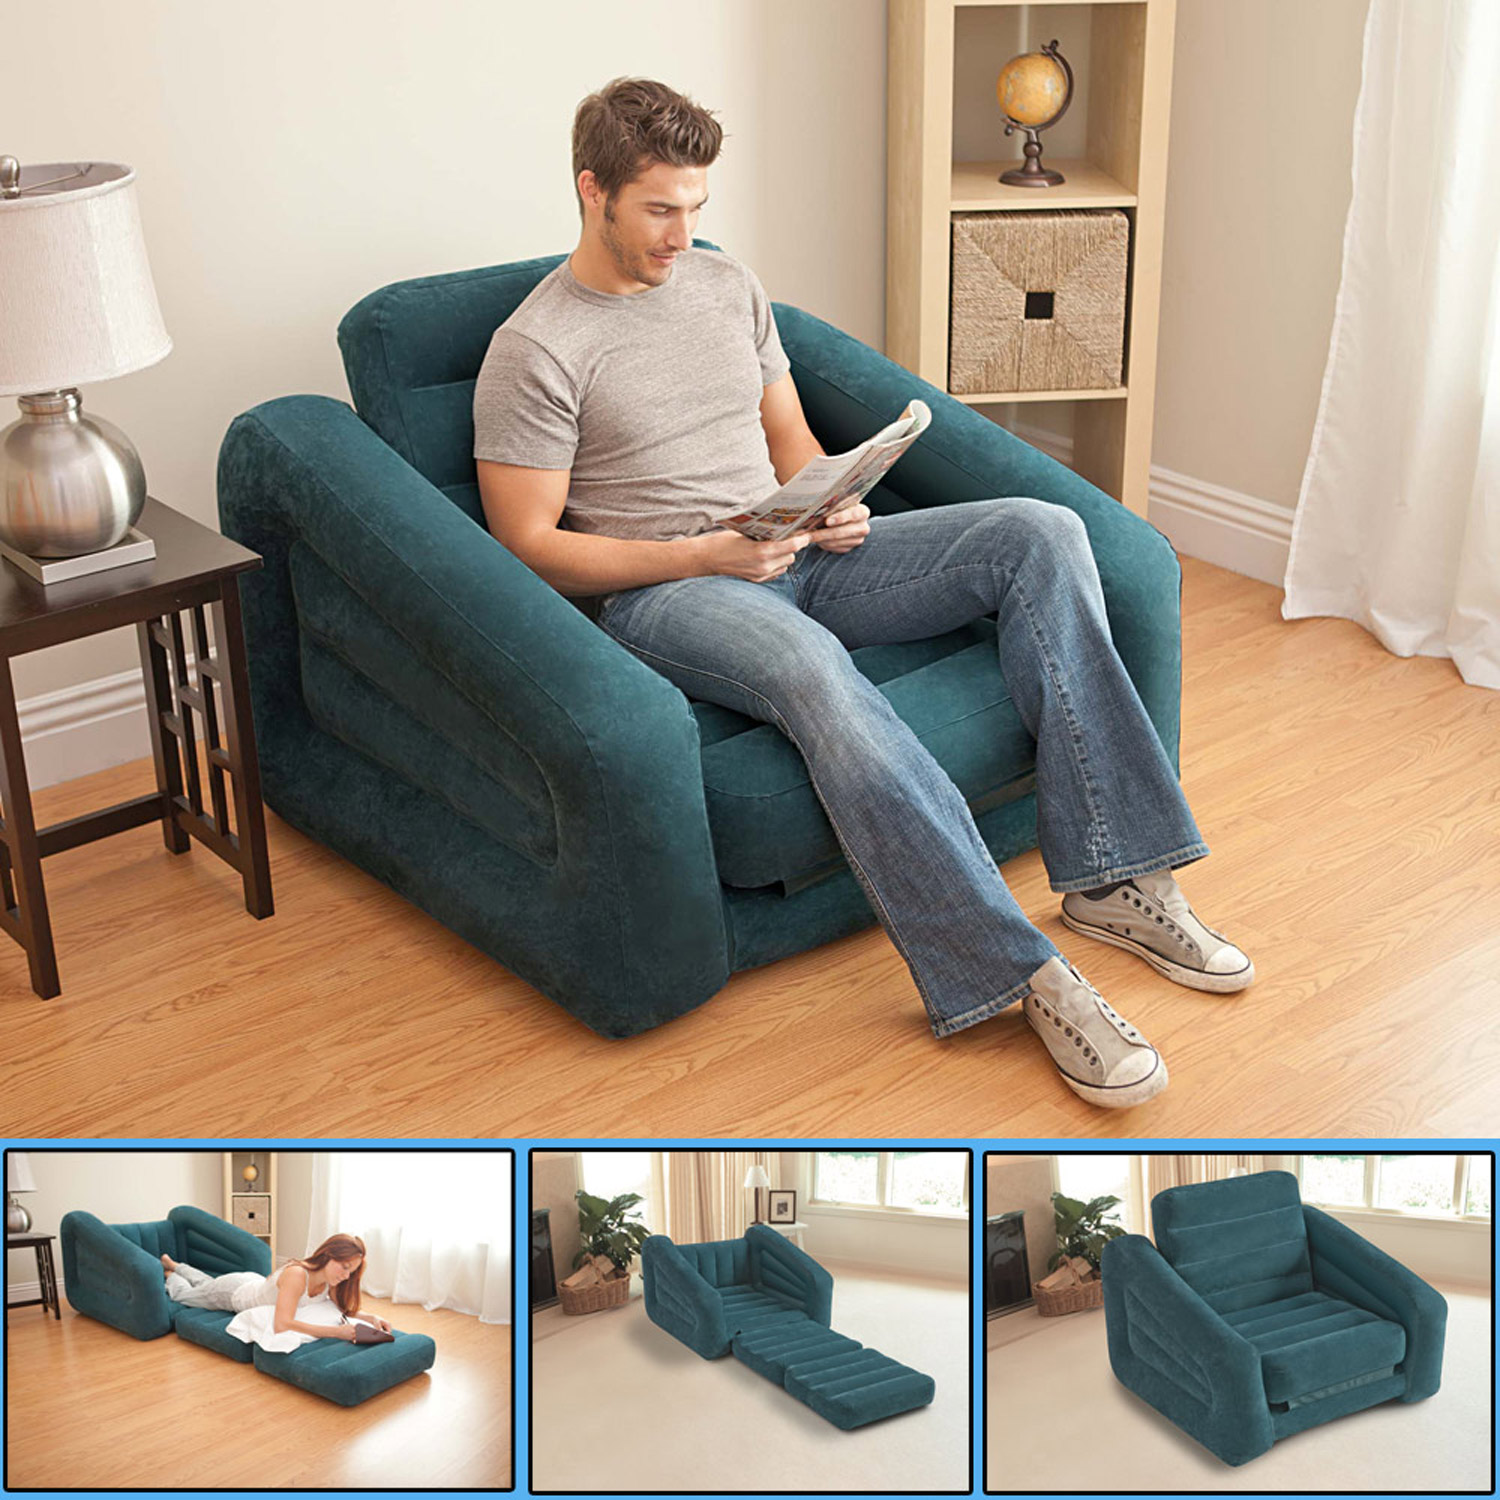 intex sofa couch lounge sessel luftbett ausziehbar camping schlafsofa g stebett ebay. Black Bedroom Furniture Sets. Home Design Ideas